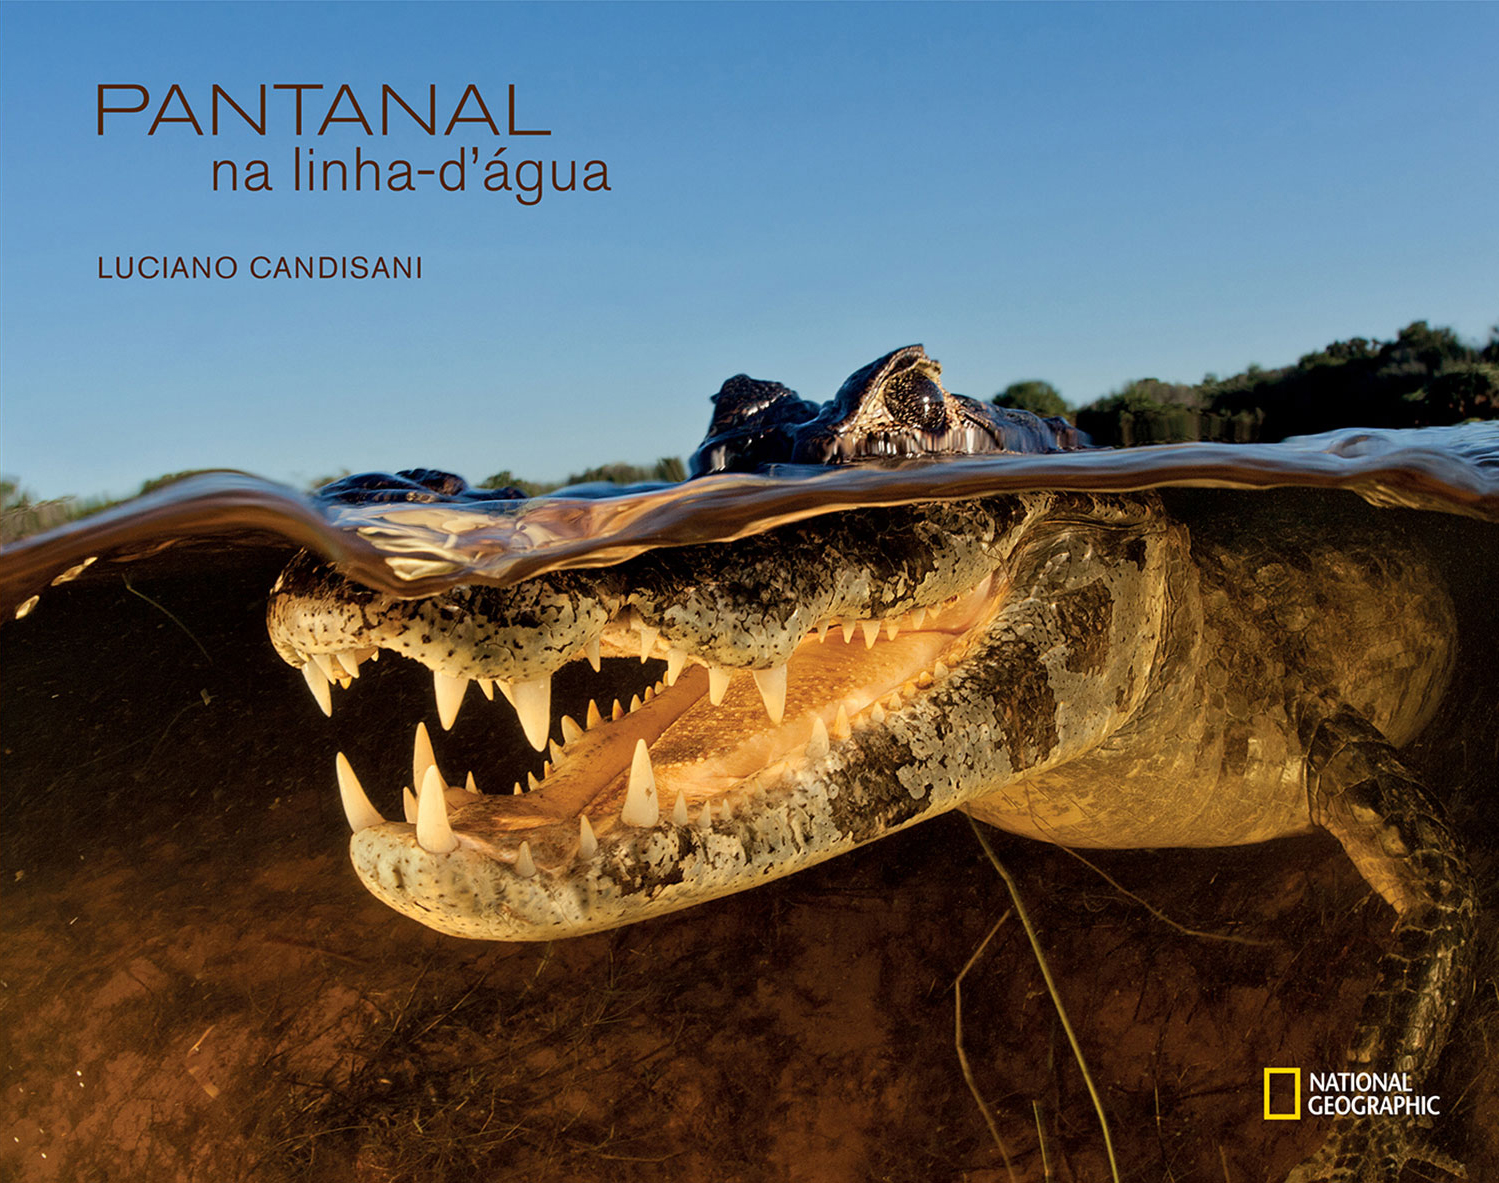 Photo editing and design for the book  Pantanal na linha-d'-água . [Pantanal on the waterline] | NG Brasil, 2013. Photos by Luciano Candisani